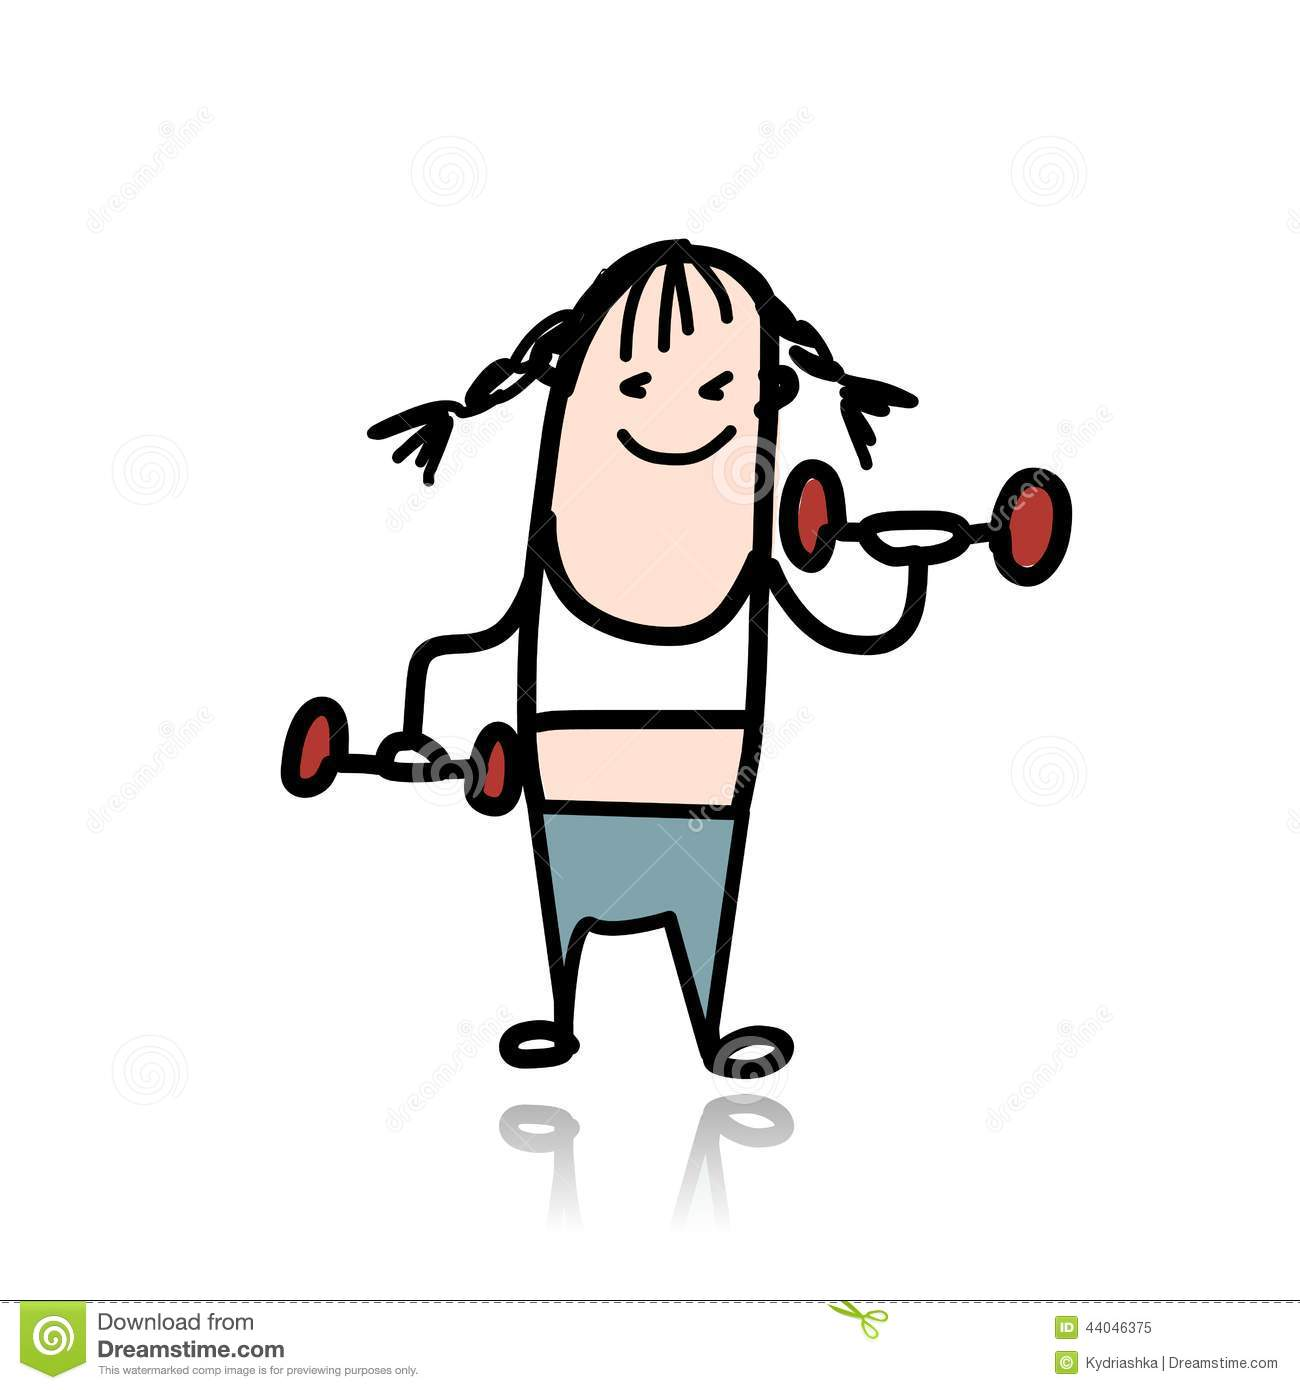 Cartoon Characters Exercising : Girl with dumbbells doing exercises cartoon stock vector